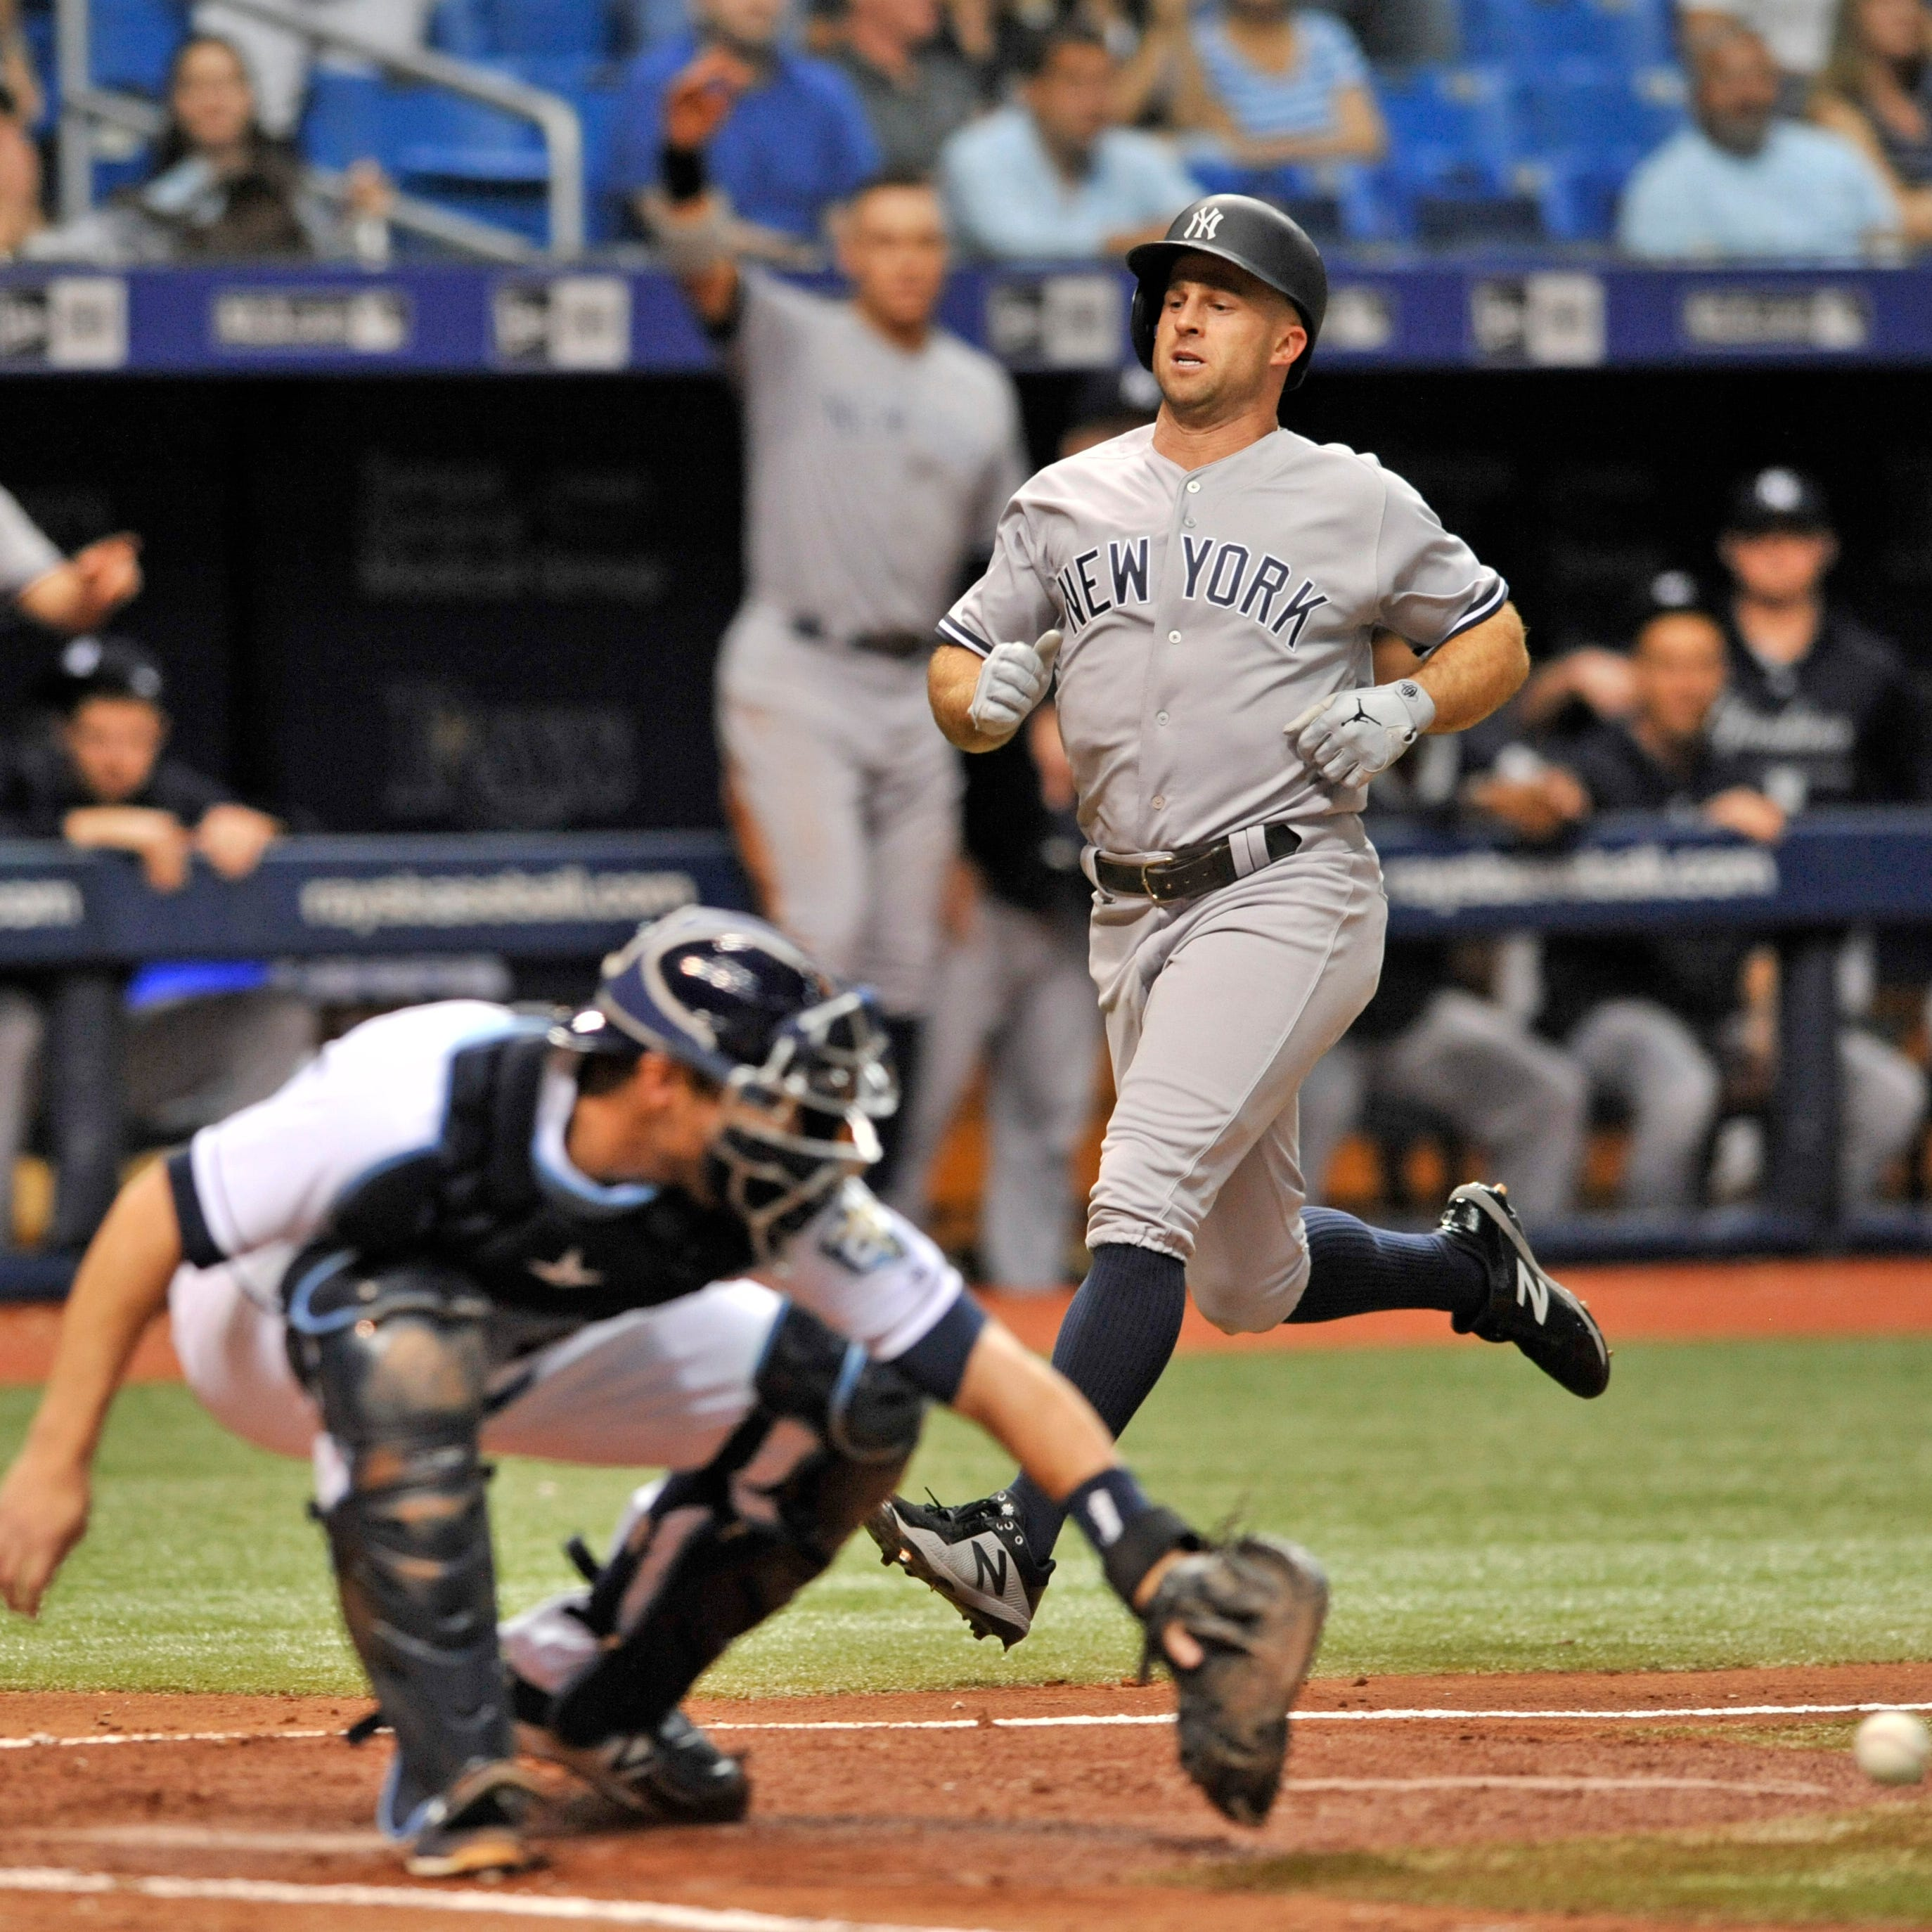 Brett Gardner has one more Yankees moment, and possibly one more October run left